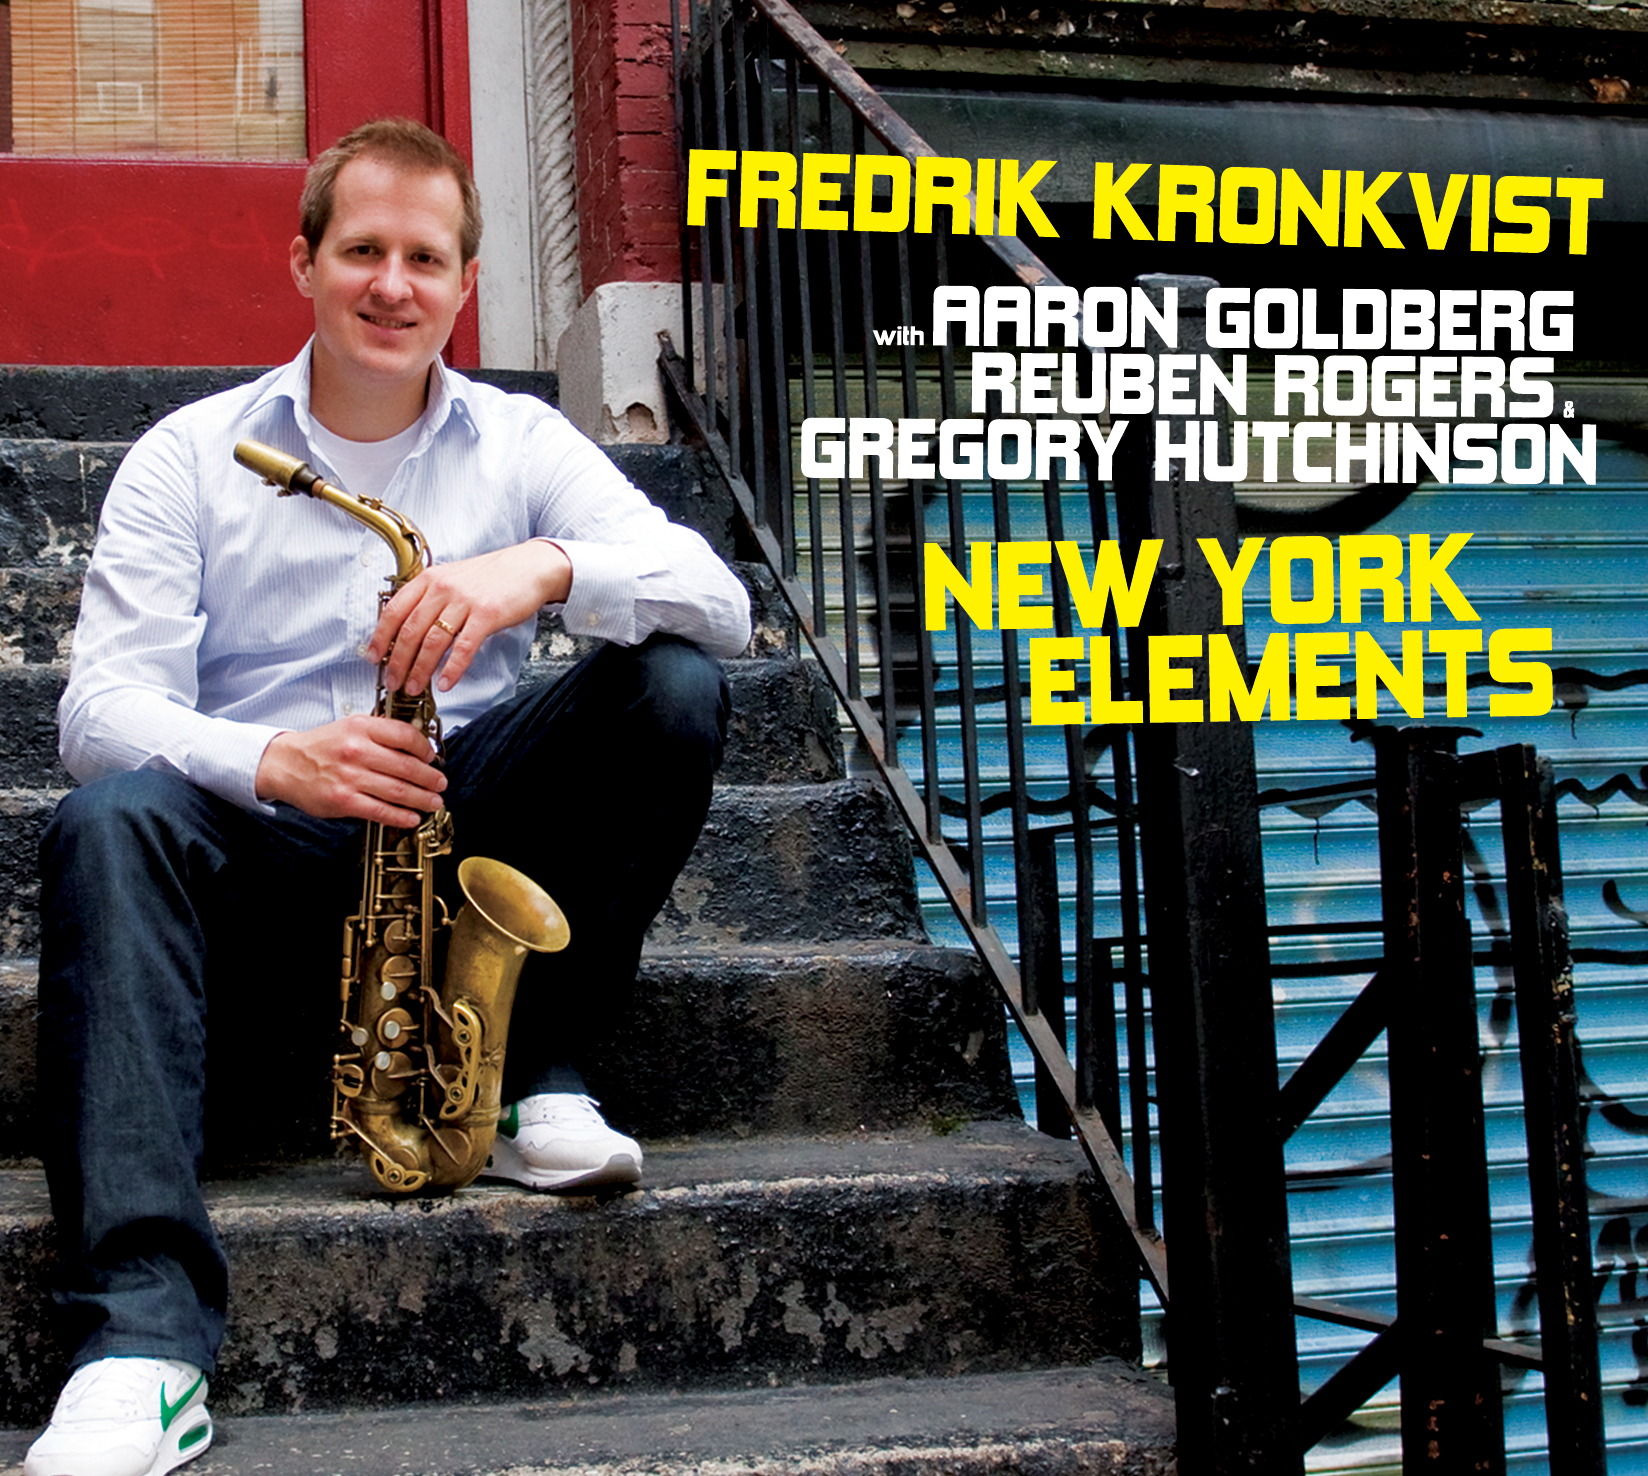 Fredrik Kronkvist - New York Elements